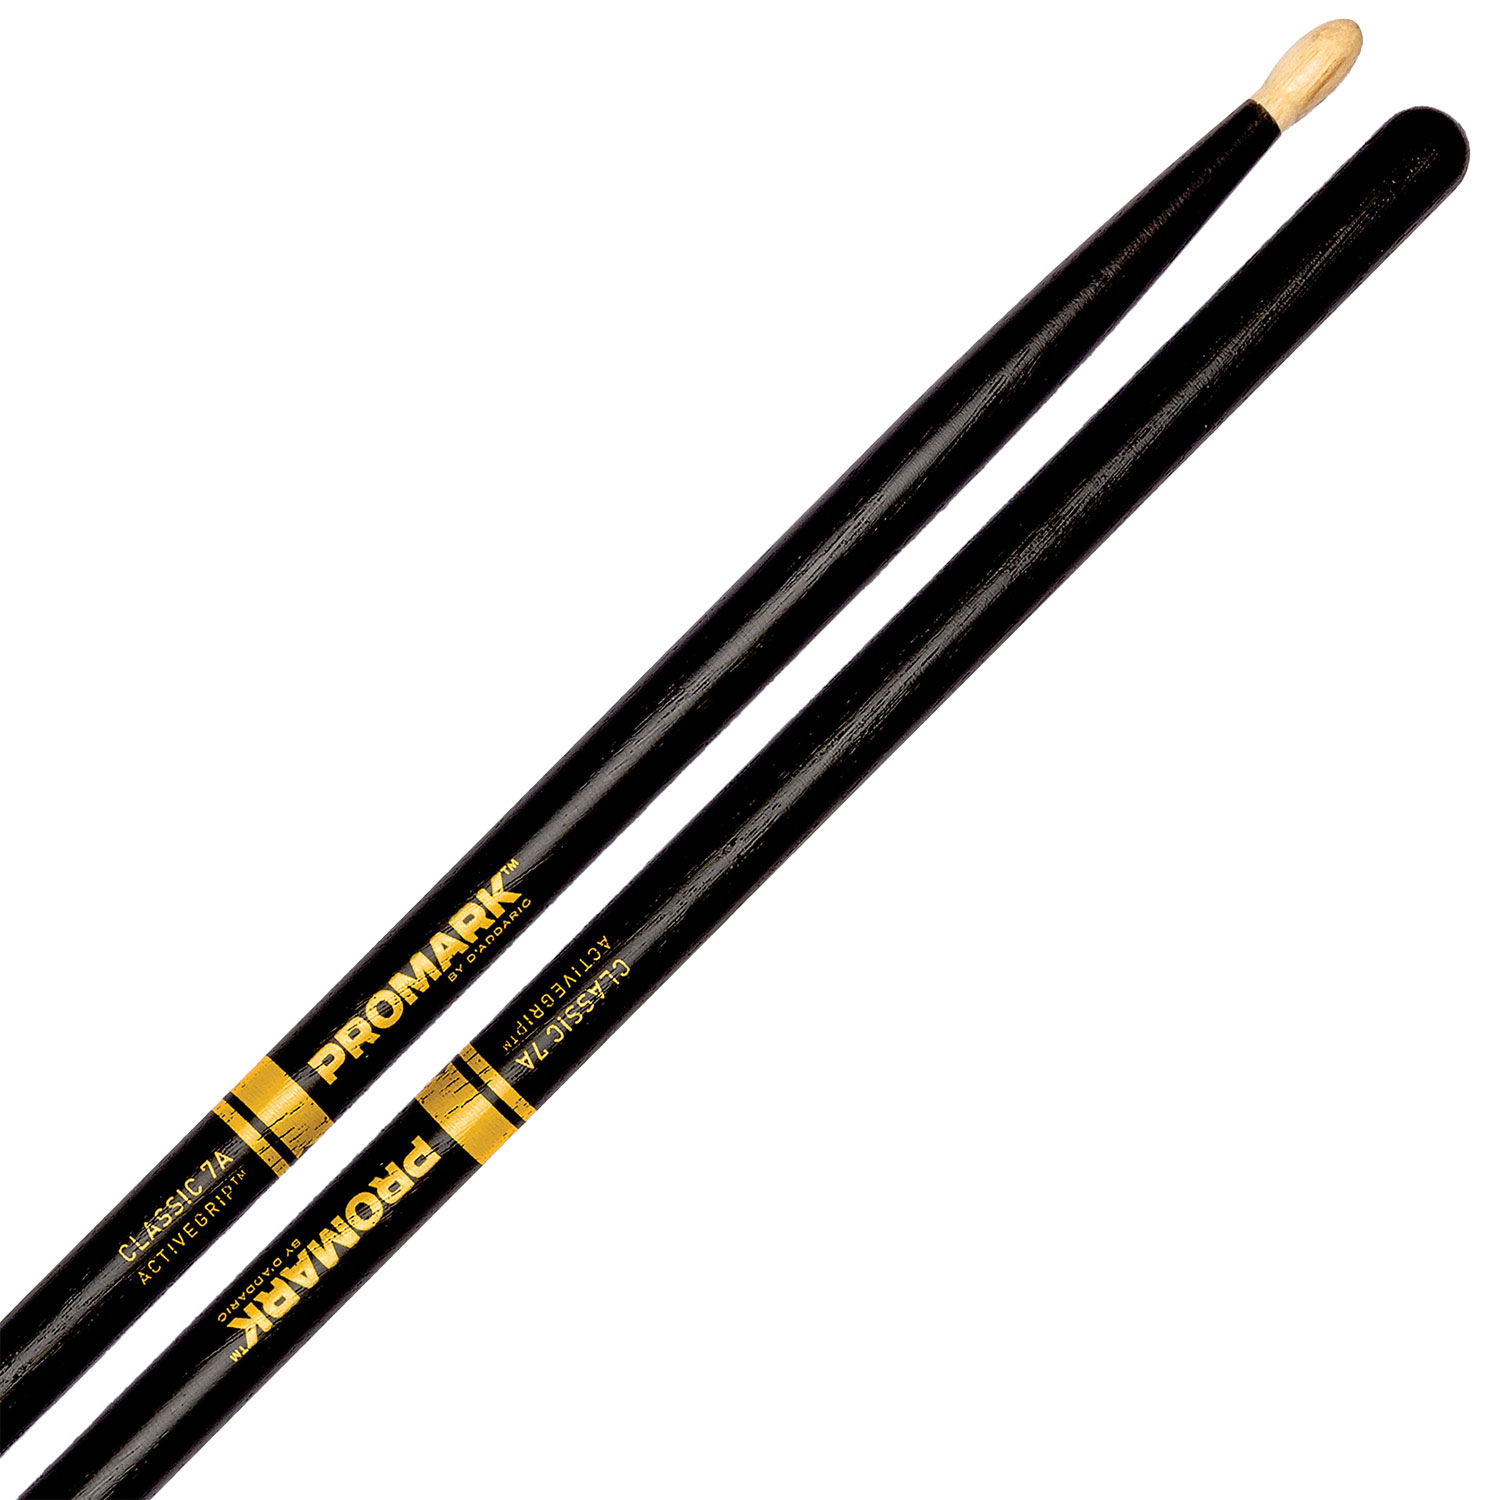 Promark Classic 7A ActiveGrip Hickory Drumsticks